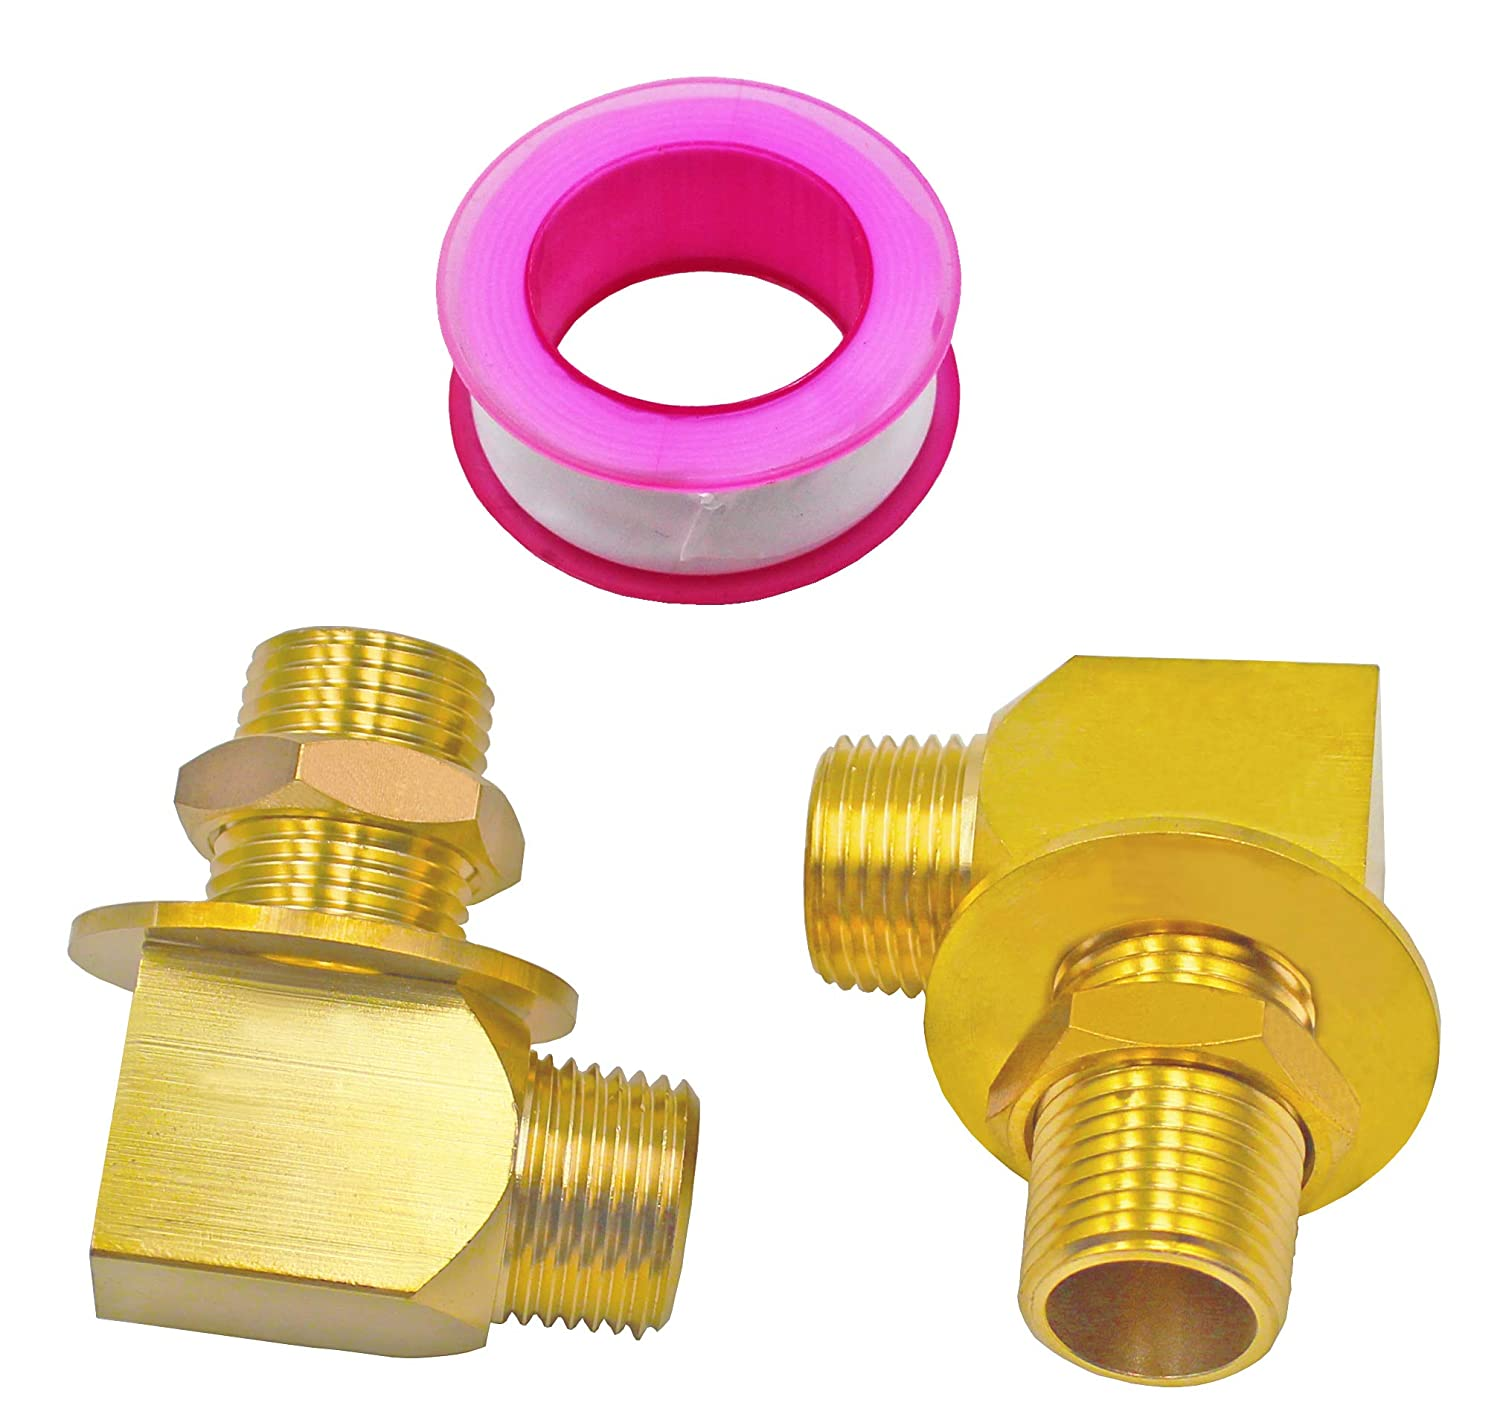 Gold T /& S Brass Sold in Pairs B-0230-K Installation Kit 1//2 Short Elbow NPT Female x Male New for T/&S B-0230 Style Series TS Brass B-0674-RGH Service Sink Faucet